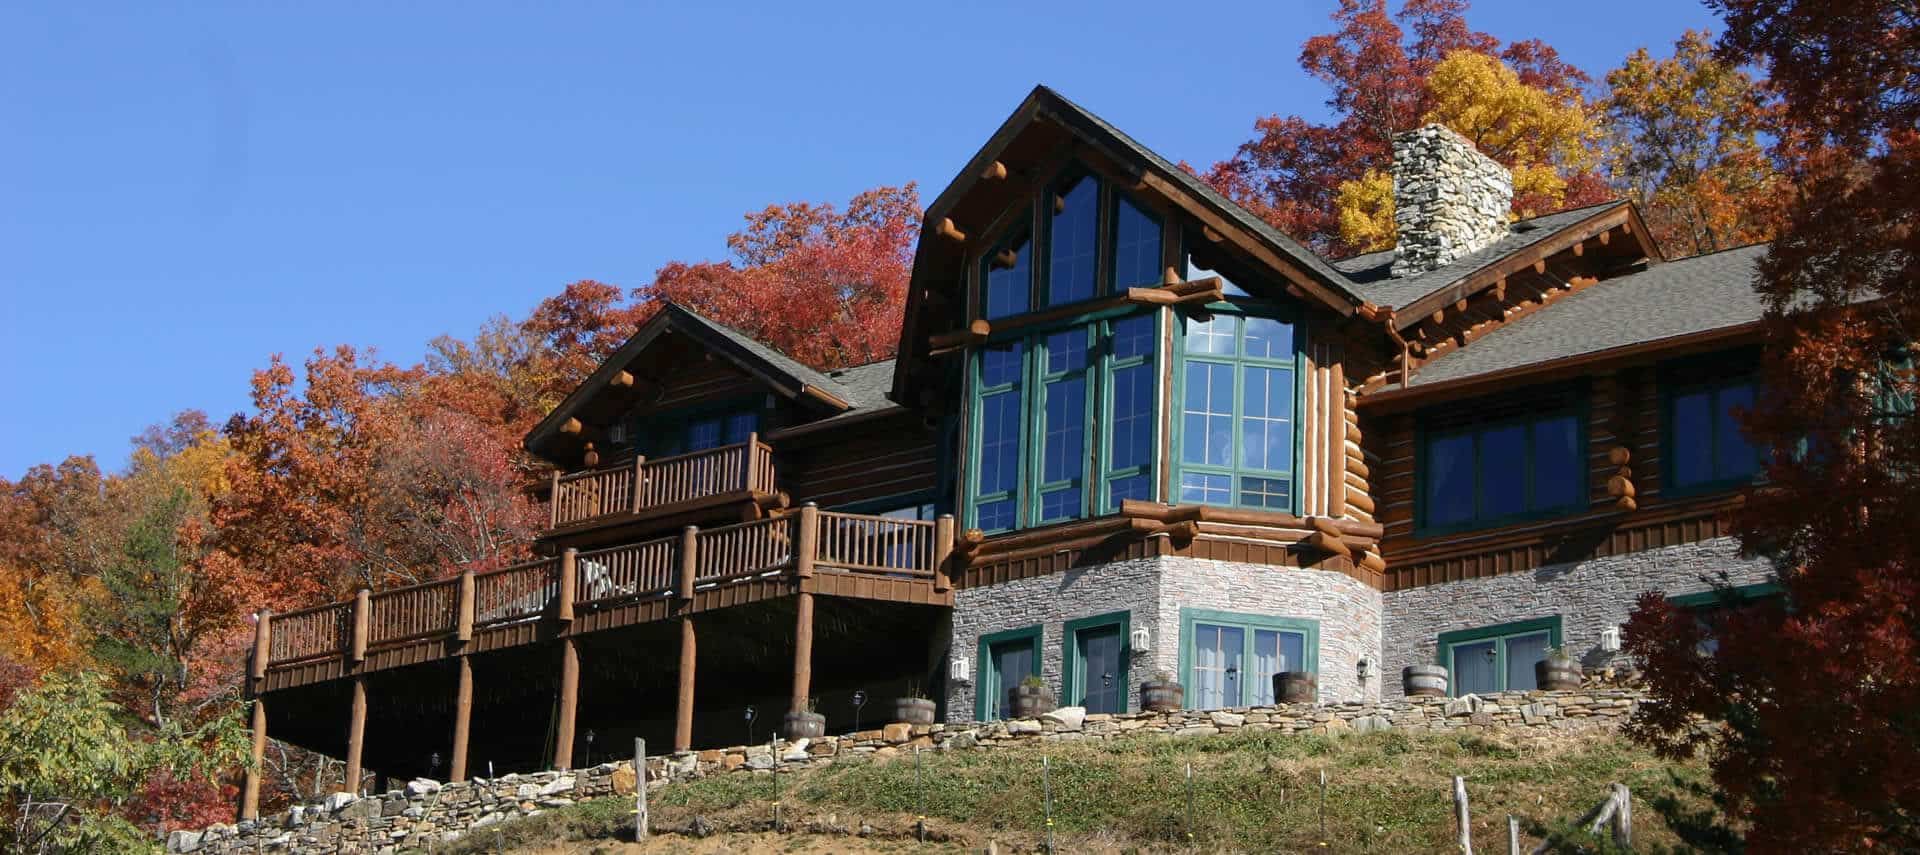 Large log-cabin style home with tall windows, stone walls on first floor, and second floor large deck.